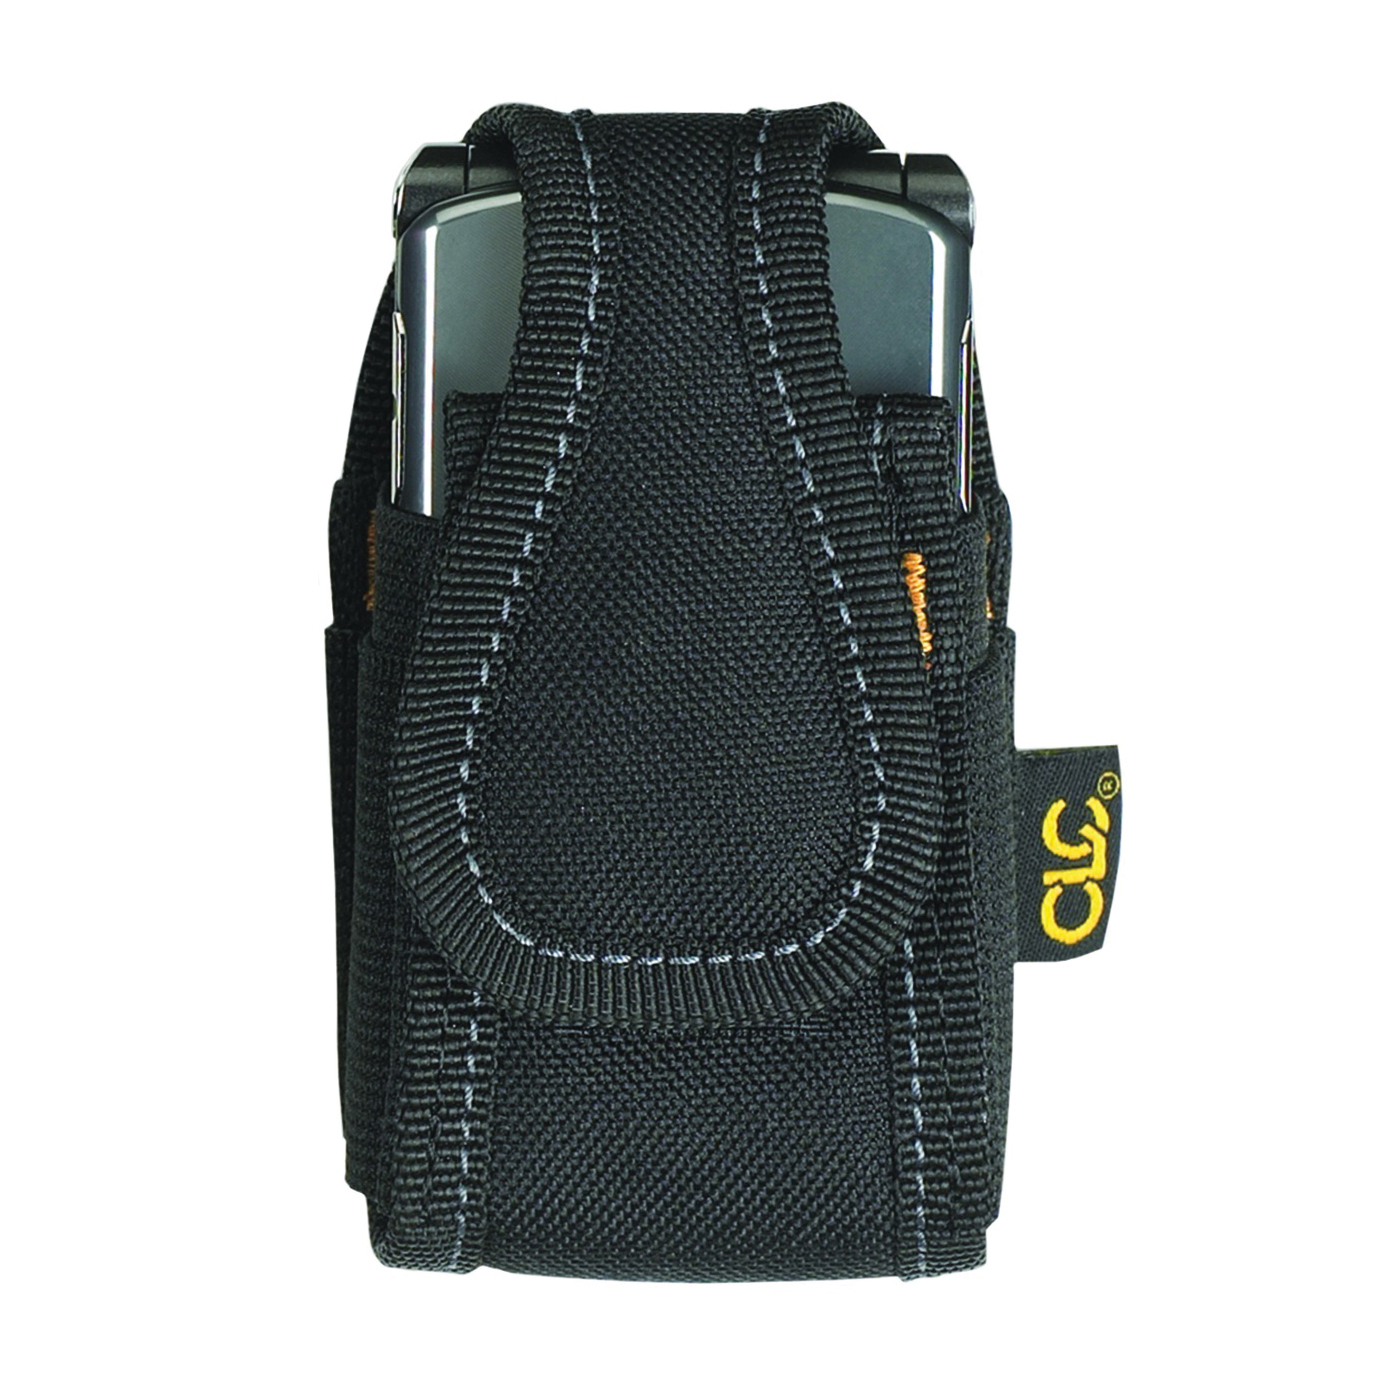 Picture of CLC 5124 Cell Phone Holder, 1-Pocket, Polyester, Black